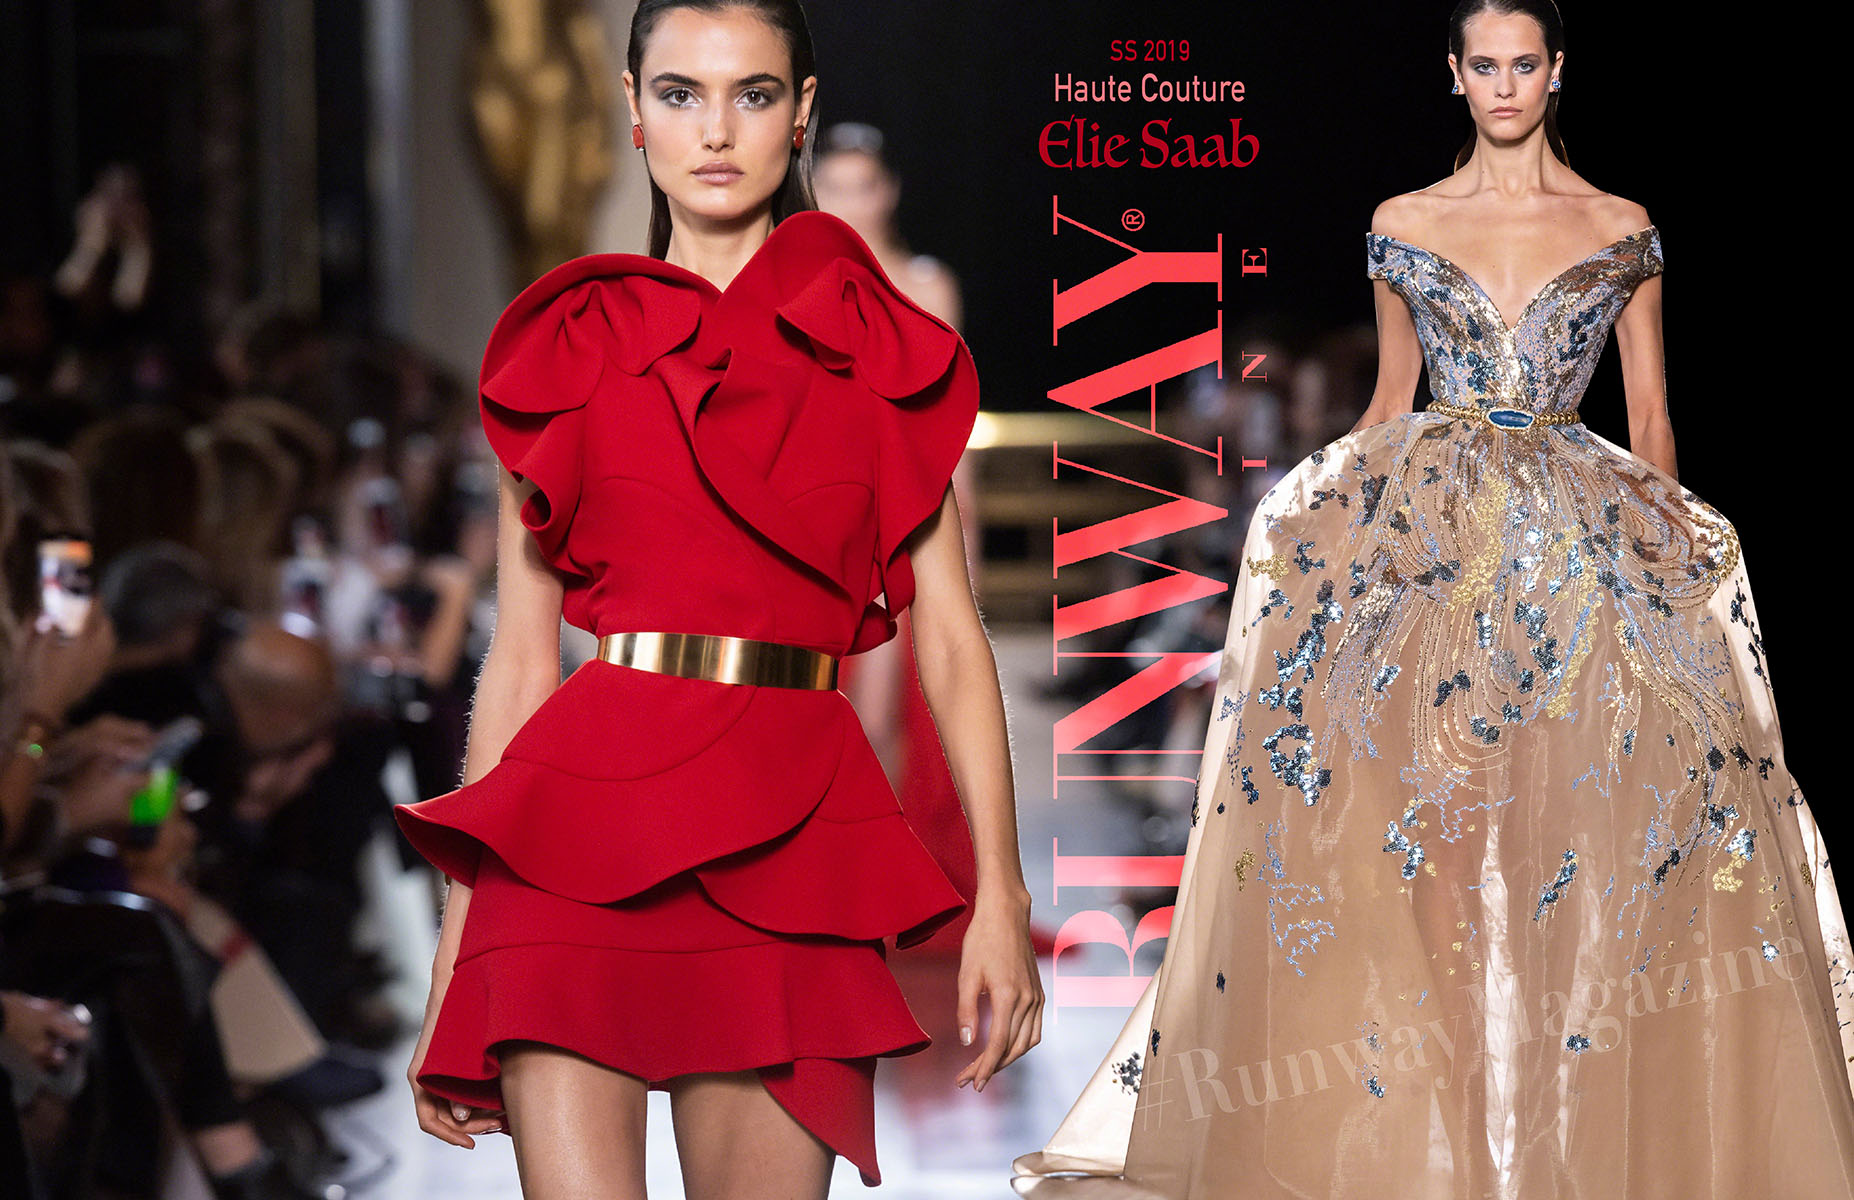 Elie Saab Haute Couture Spring Summer 2019 by Runway Magazine